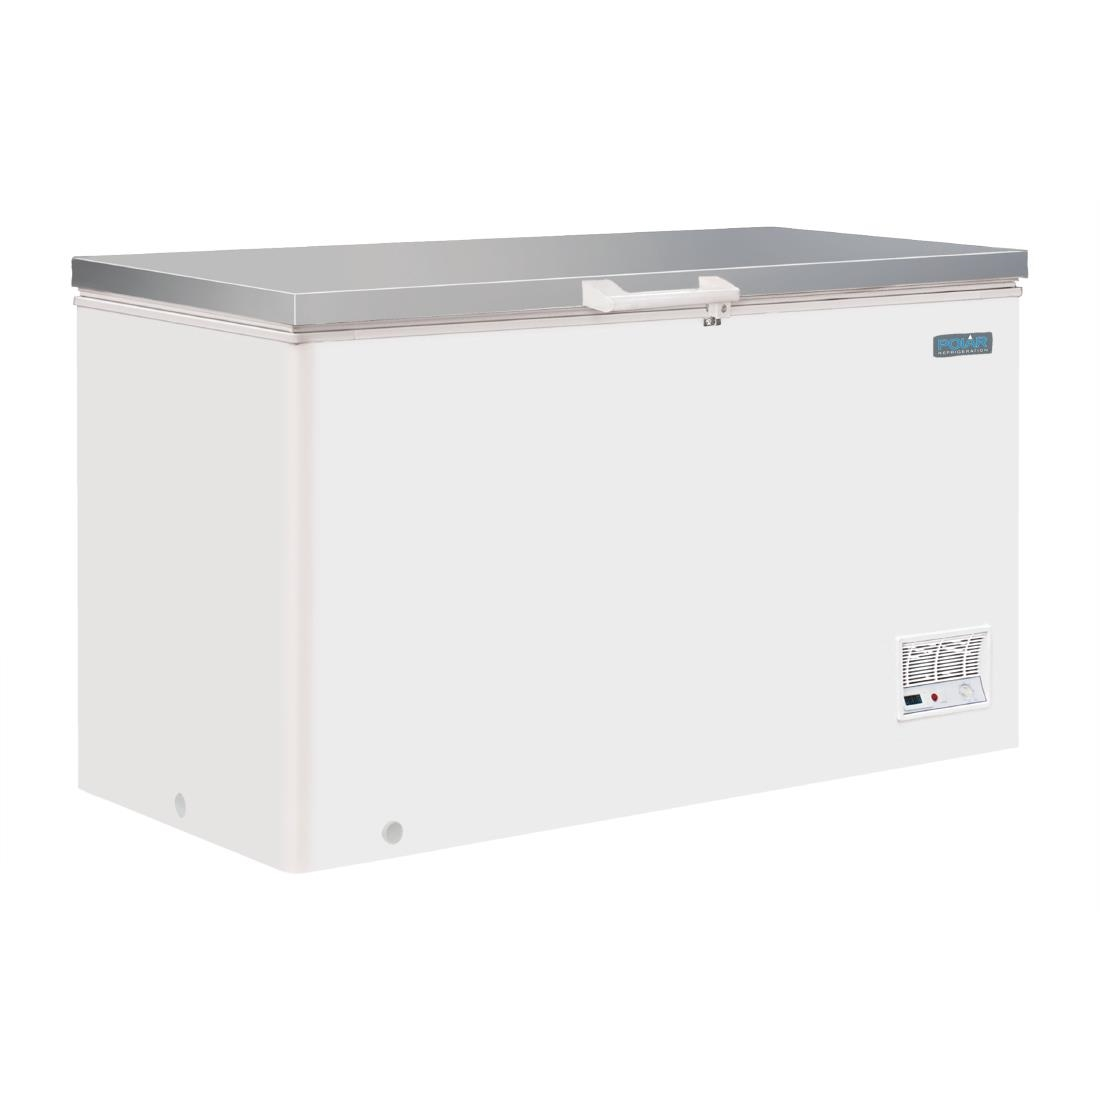 Polar Chest Freezer With Stainless Steel Lid 385ltr Cm530 Buy 100 Box R600a